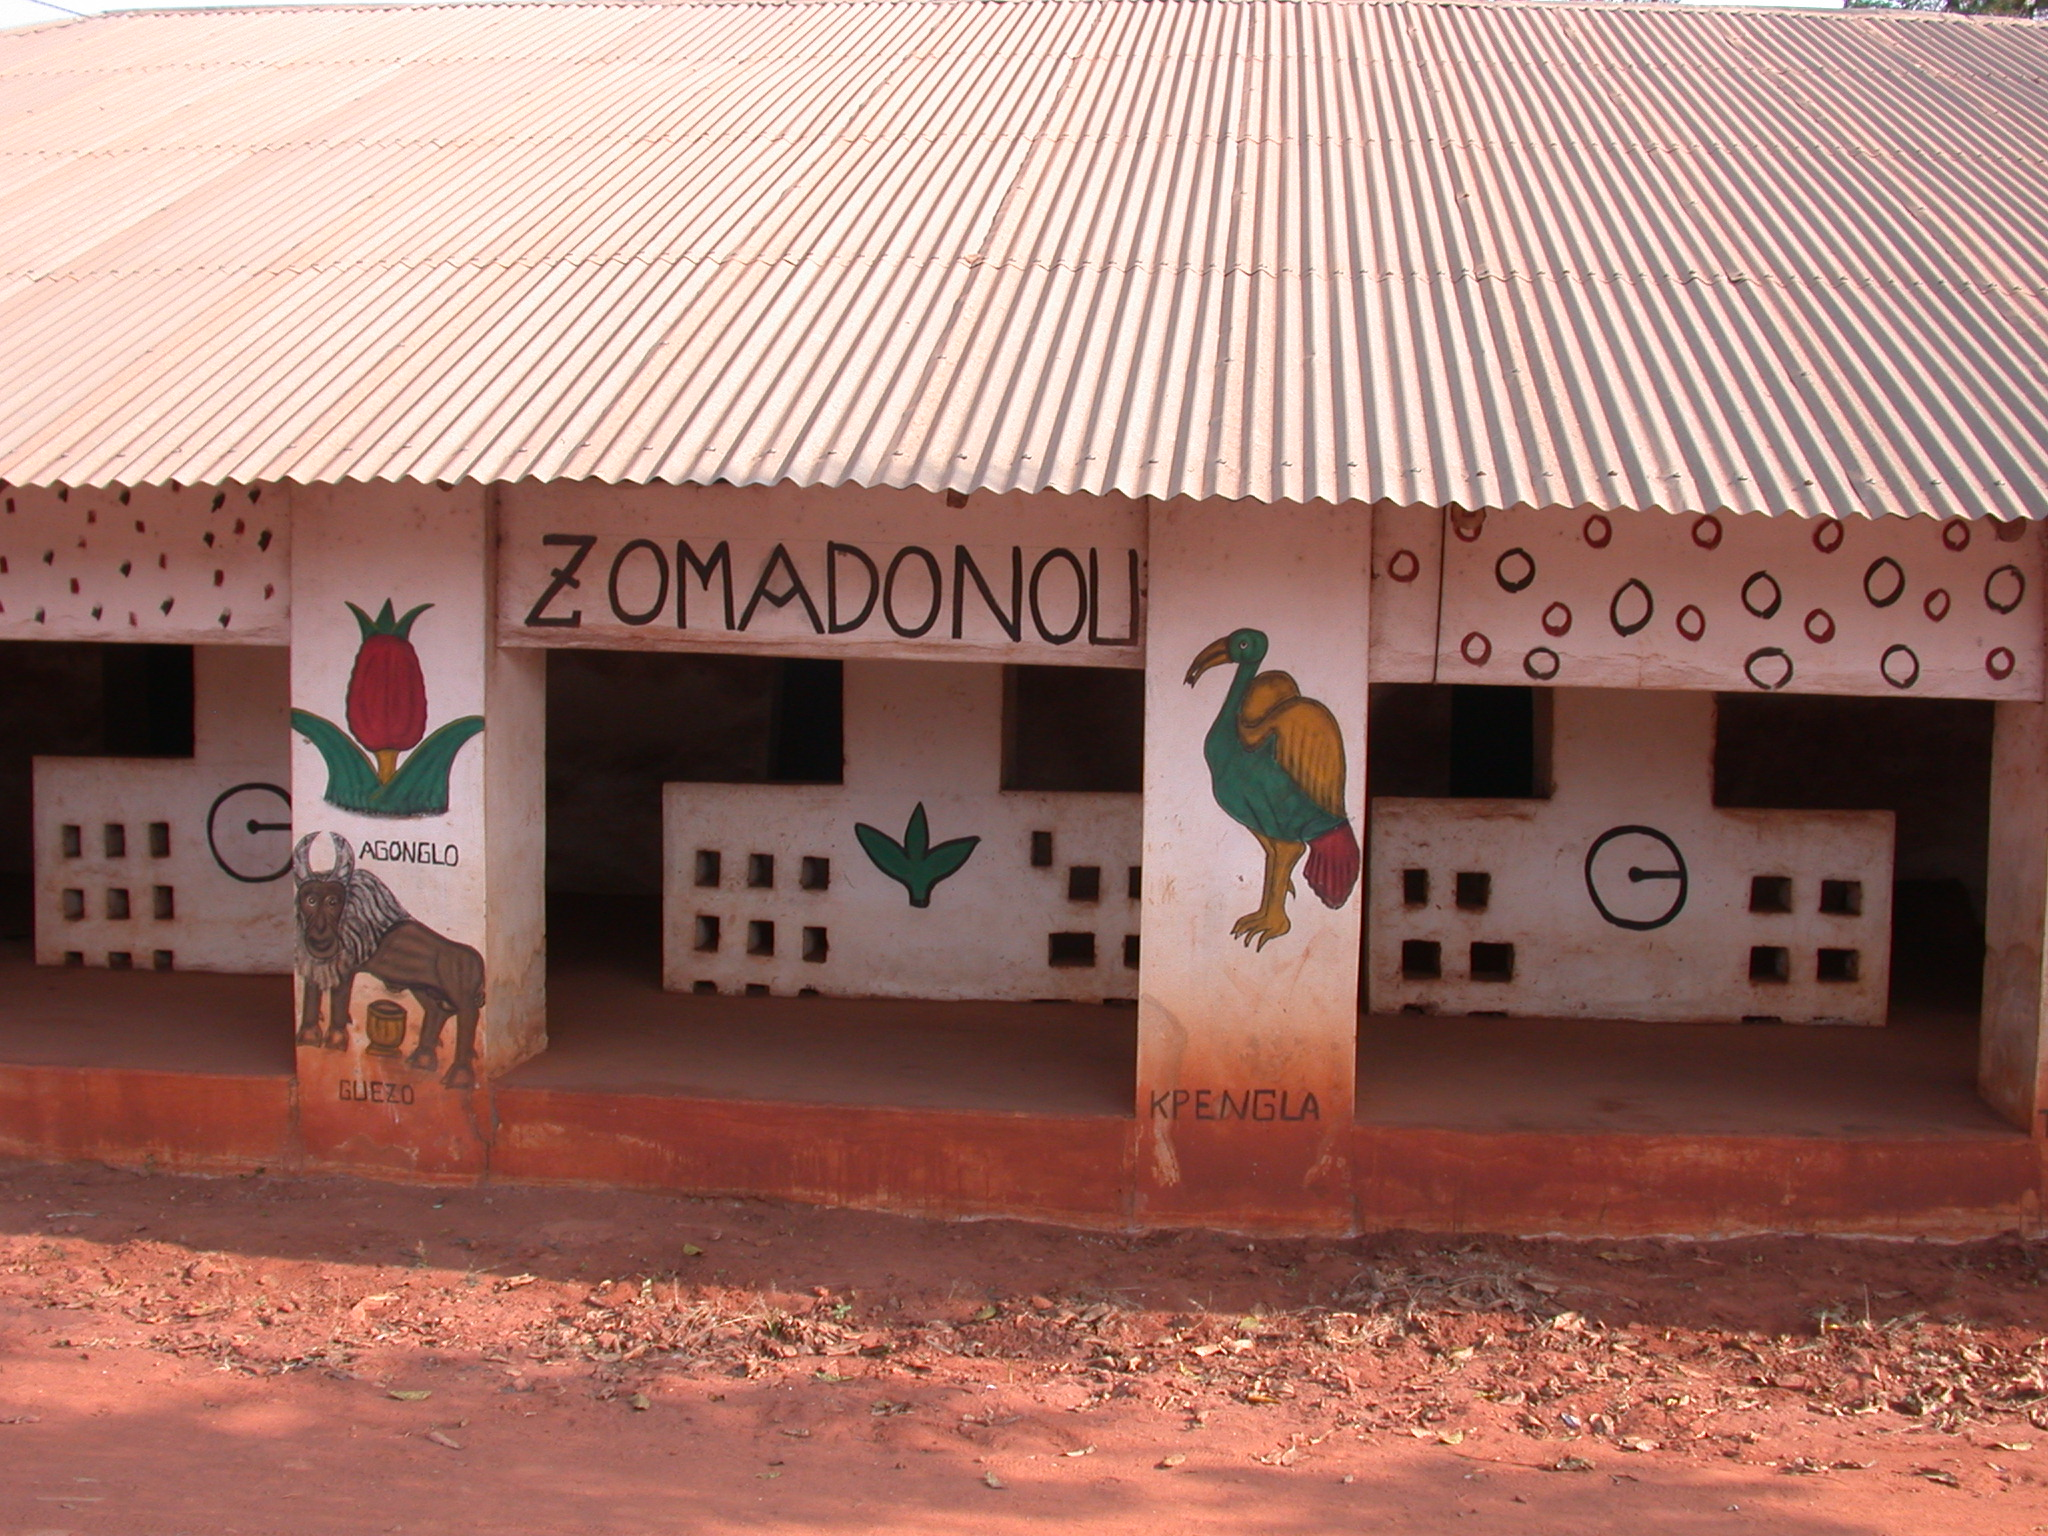 Zomadonou Akaba Temple With Symbols of Agonglo, Guezo, and Kpengla, Abomey, Benin